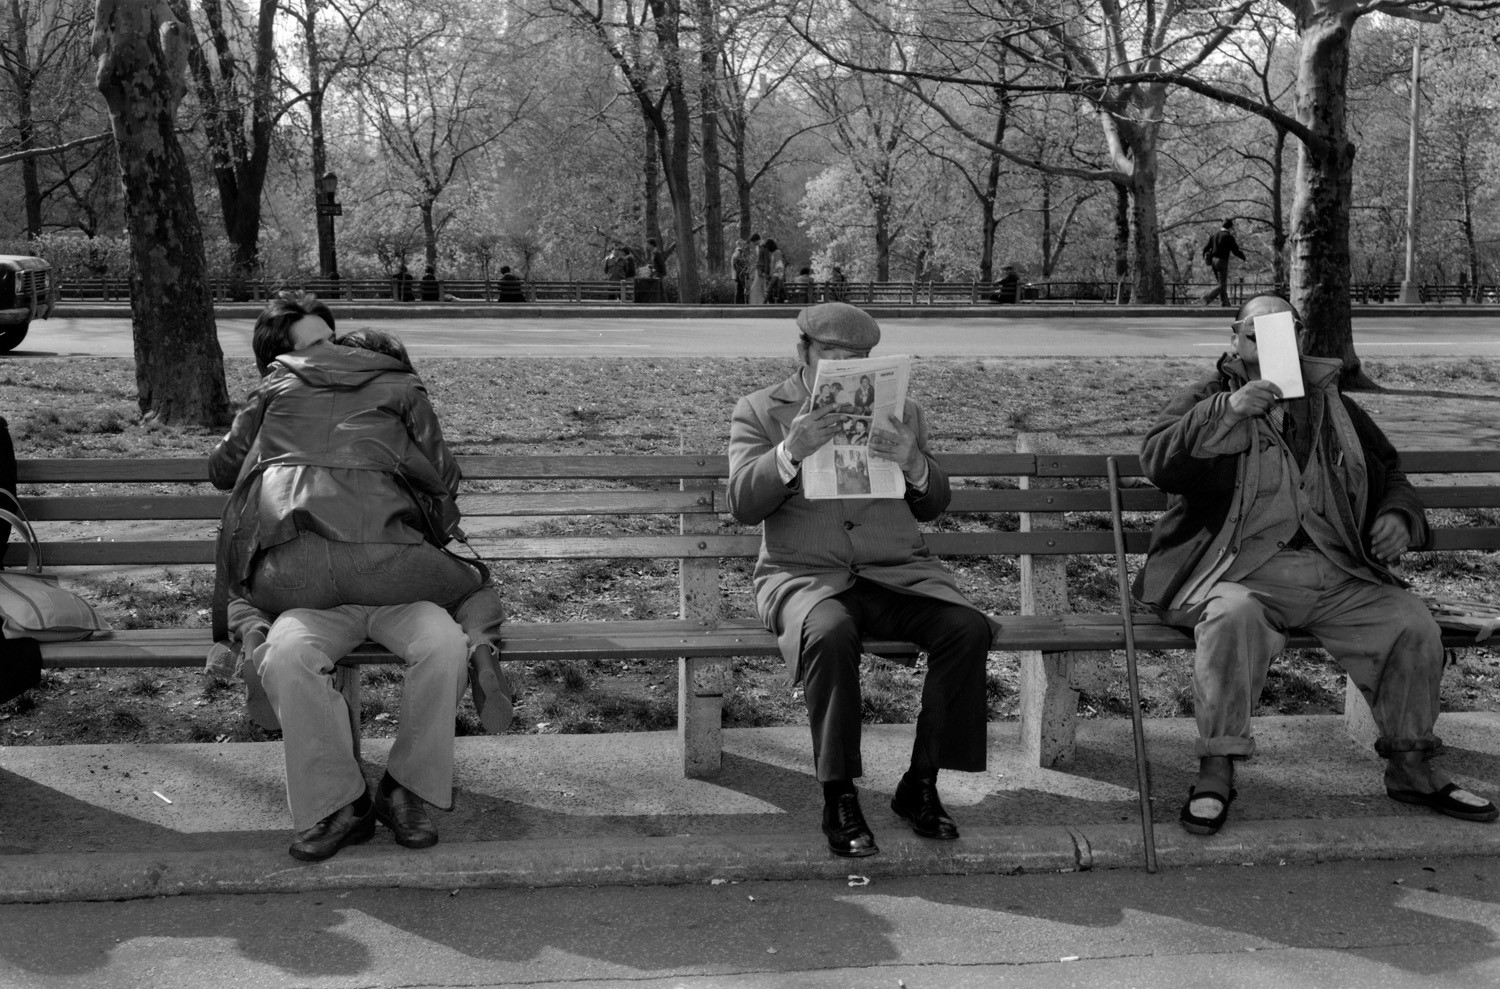 Tod Papageorge, Central Park, New York, 1979